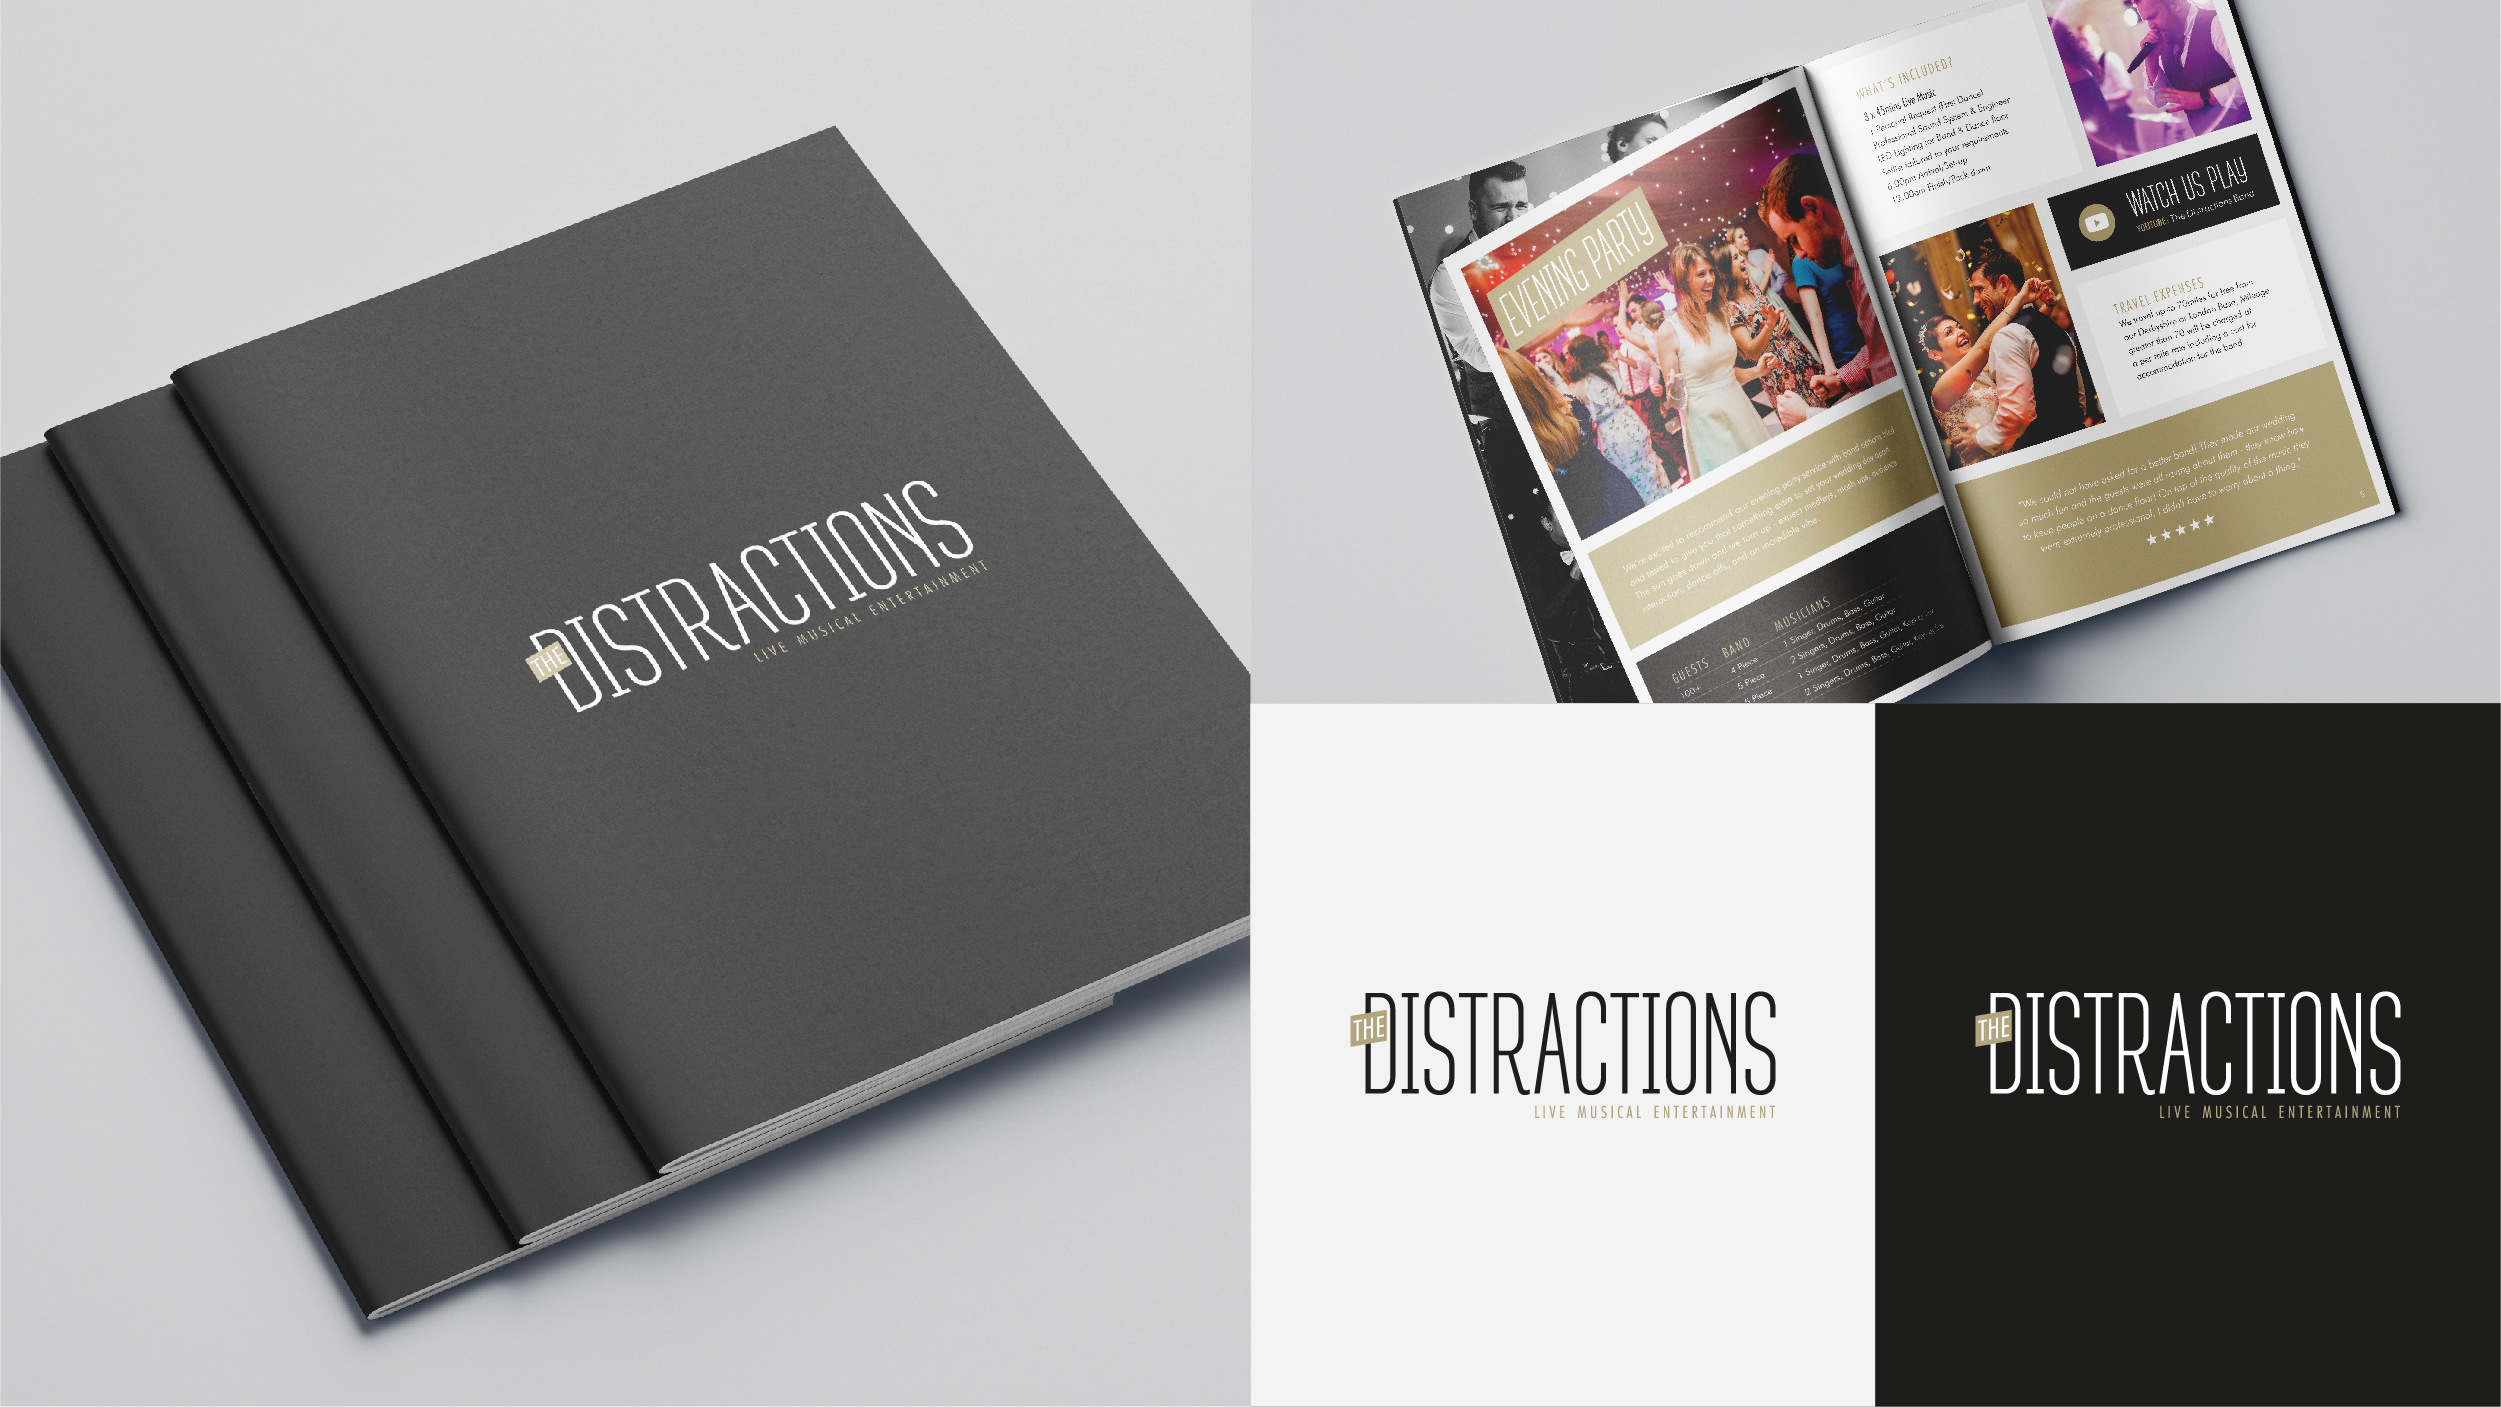 The Distractions Band brochure design